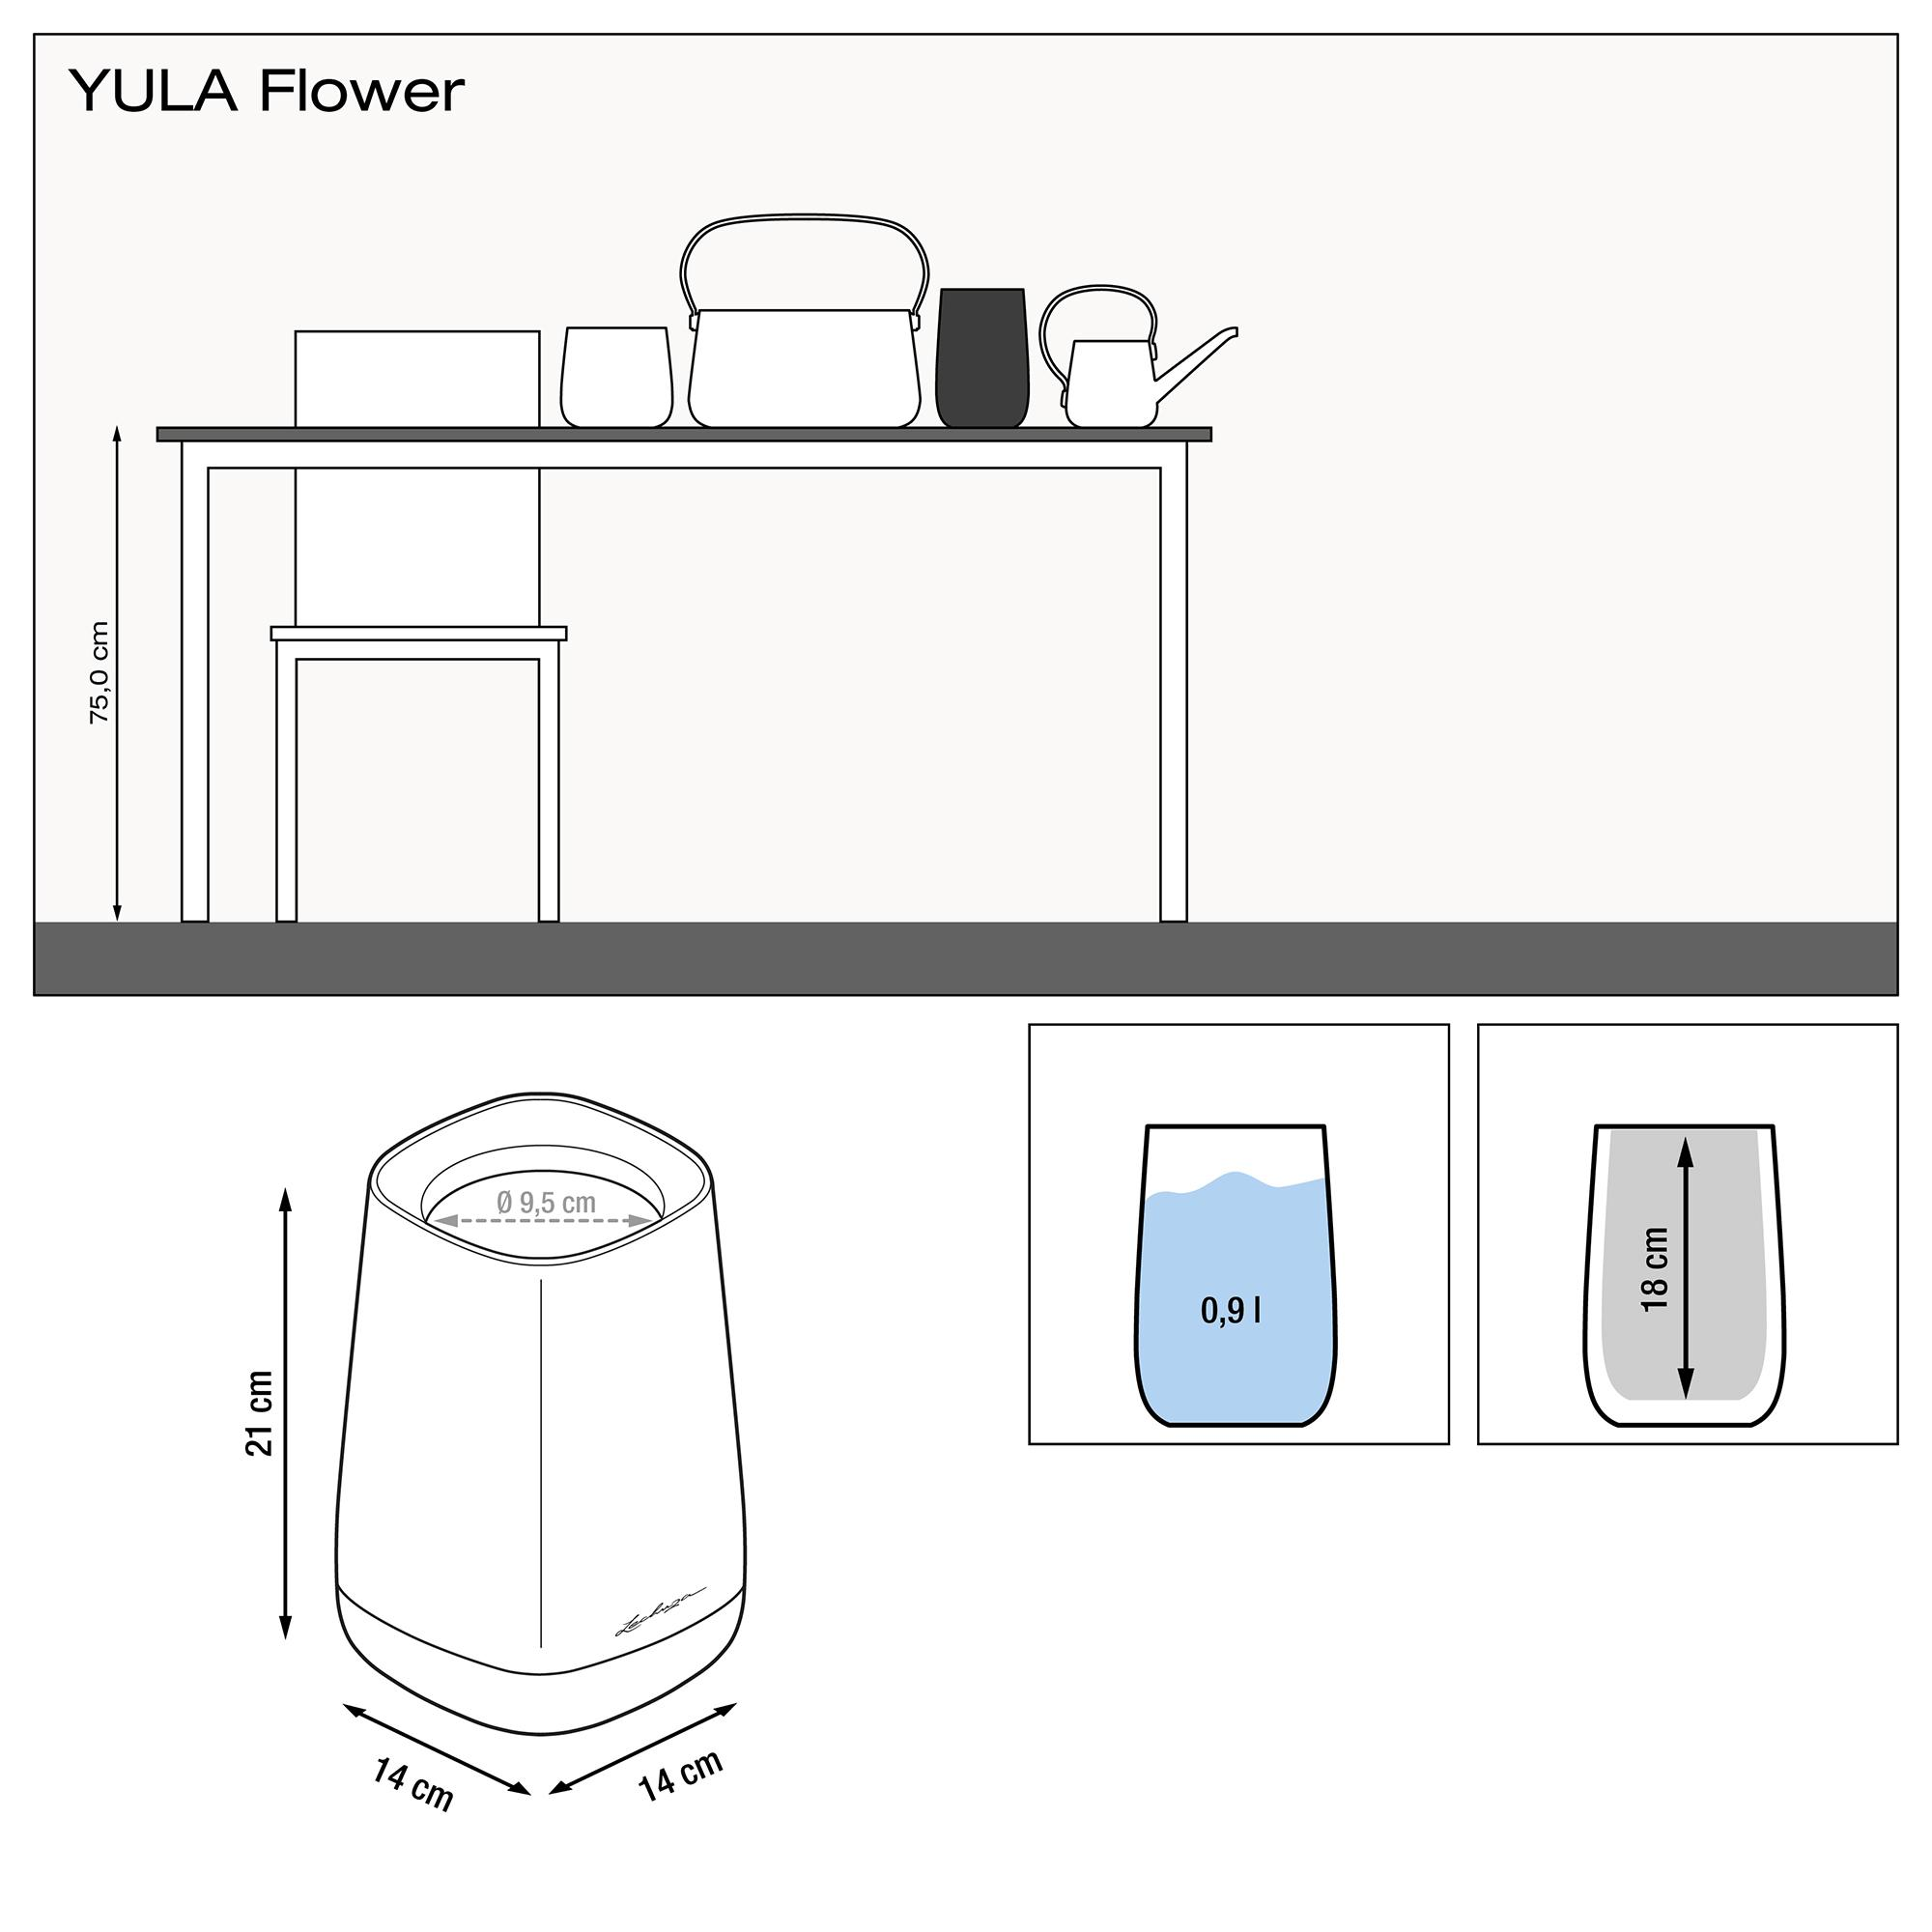 le_yula-flower_product_addi_nz